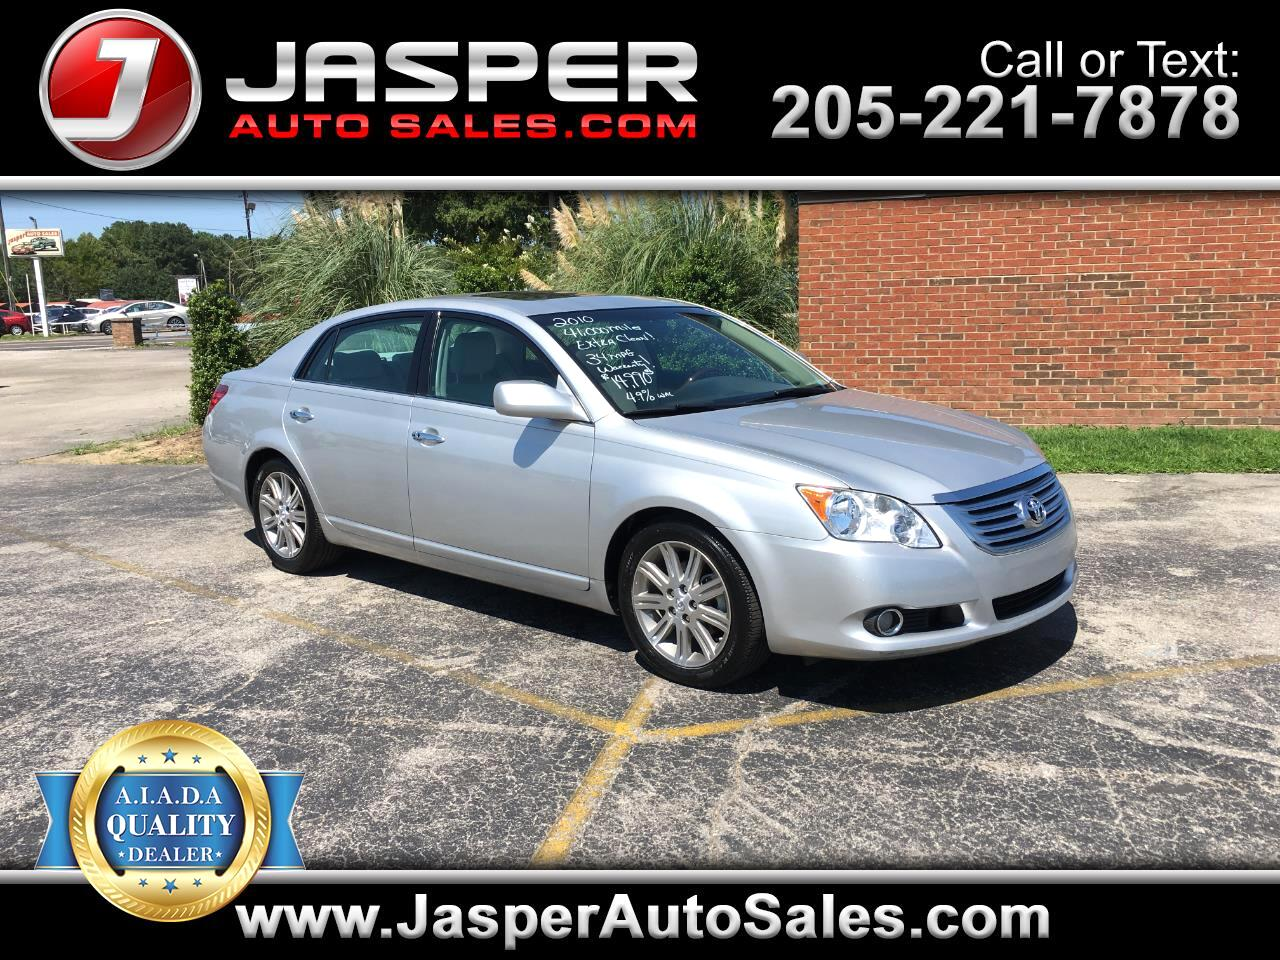 2010 Toyota Avalon 4dr Sdn Limited (Natl)